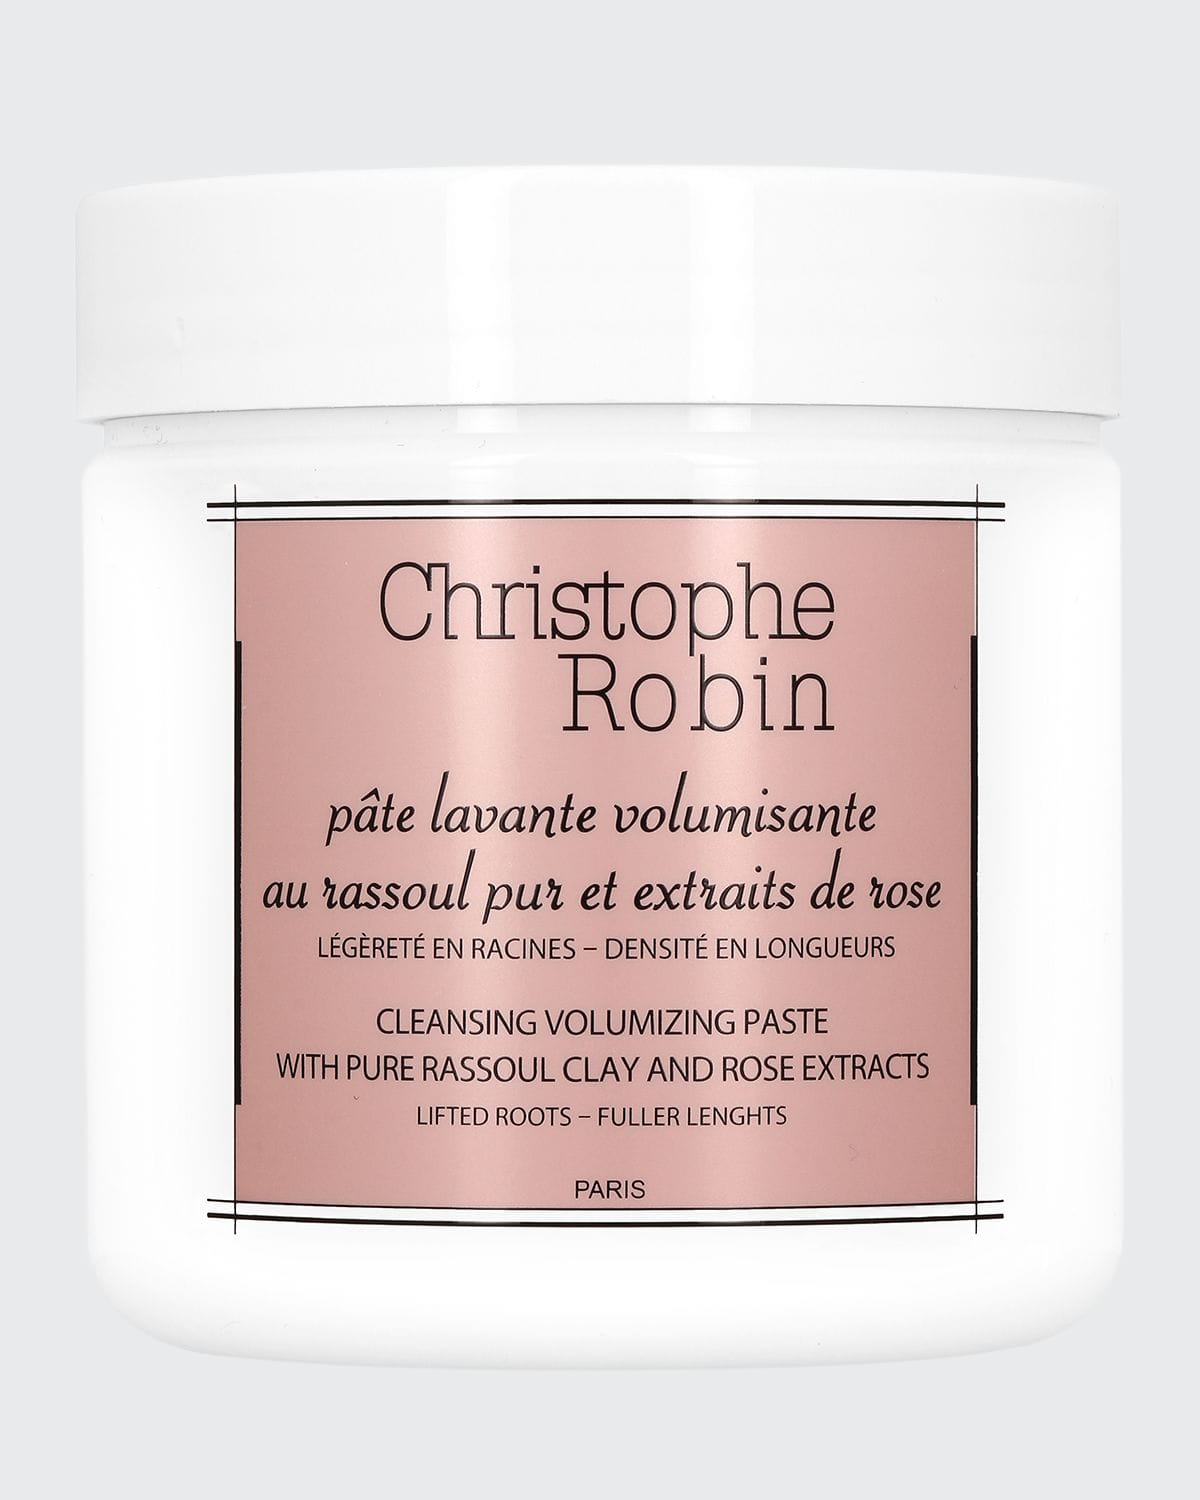 Cleansing and Volumizing Paste with Rhassoul and Rose Extracts